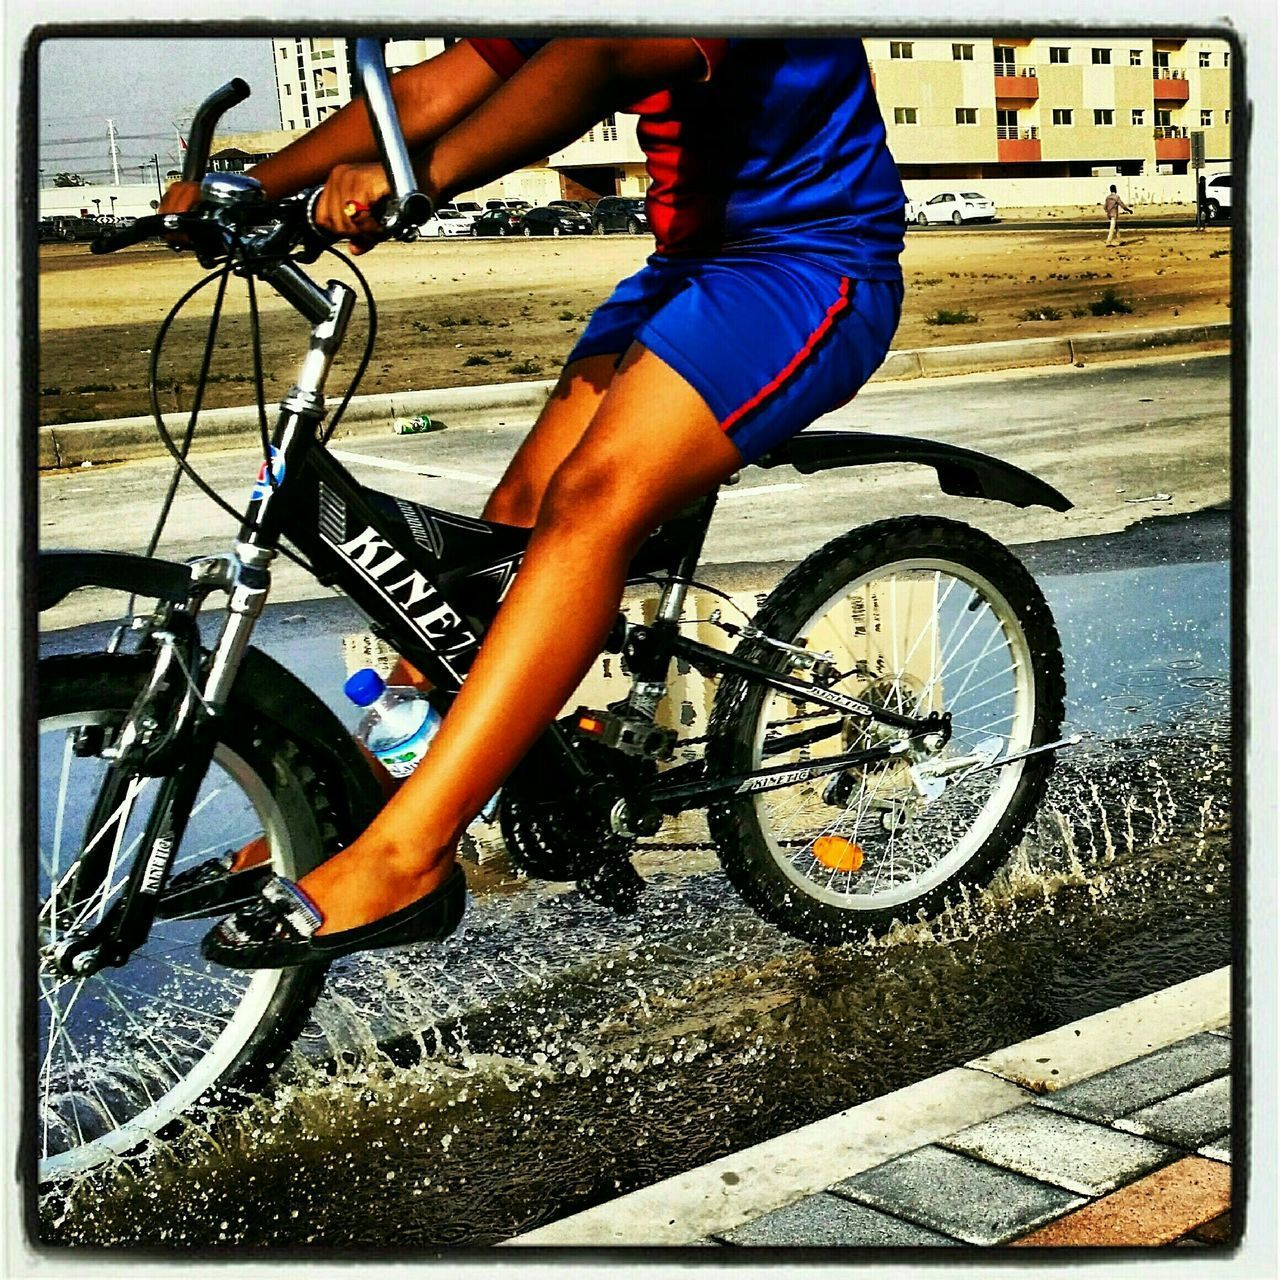 bicycle, transportation, cycling, land vehicle, mode of transport, real people, day, riding, outdoors, one person, side view, wheel, water, sport, men, lifestyles, adventure, low section, bmx cycling, tire, mountain bike, sports race, cycling helmet, human hand, close-up, people